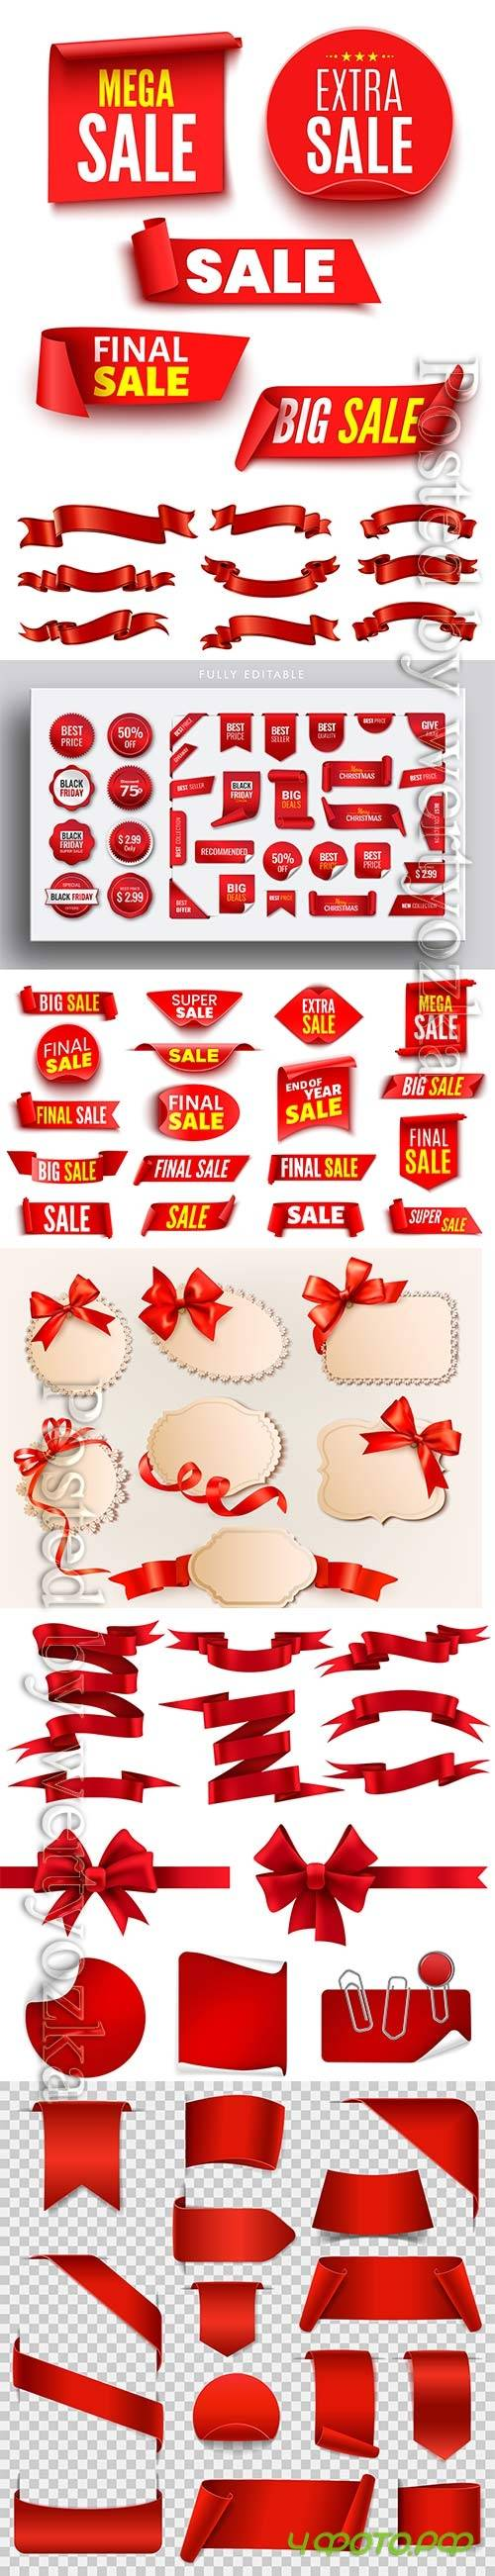 Red ribbon collection pack for event banners and price tag badges